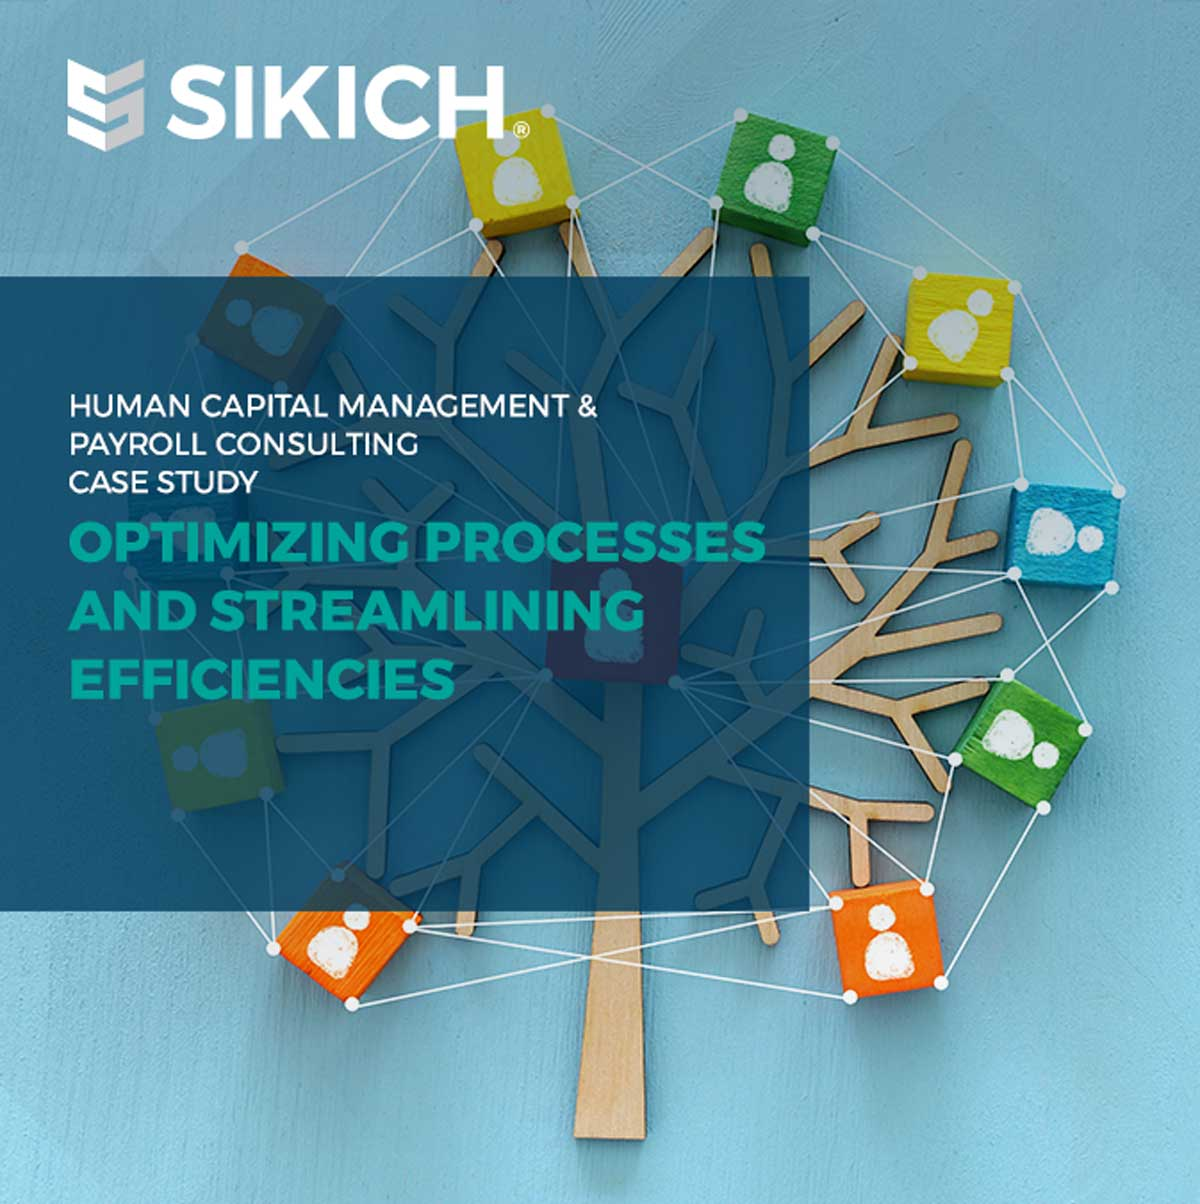 Sikich Optimizing Processes and Streamlining Efficiencies